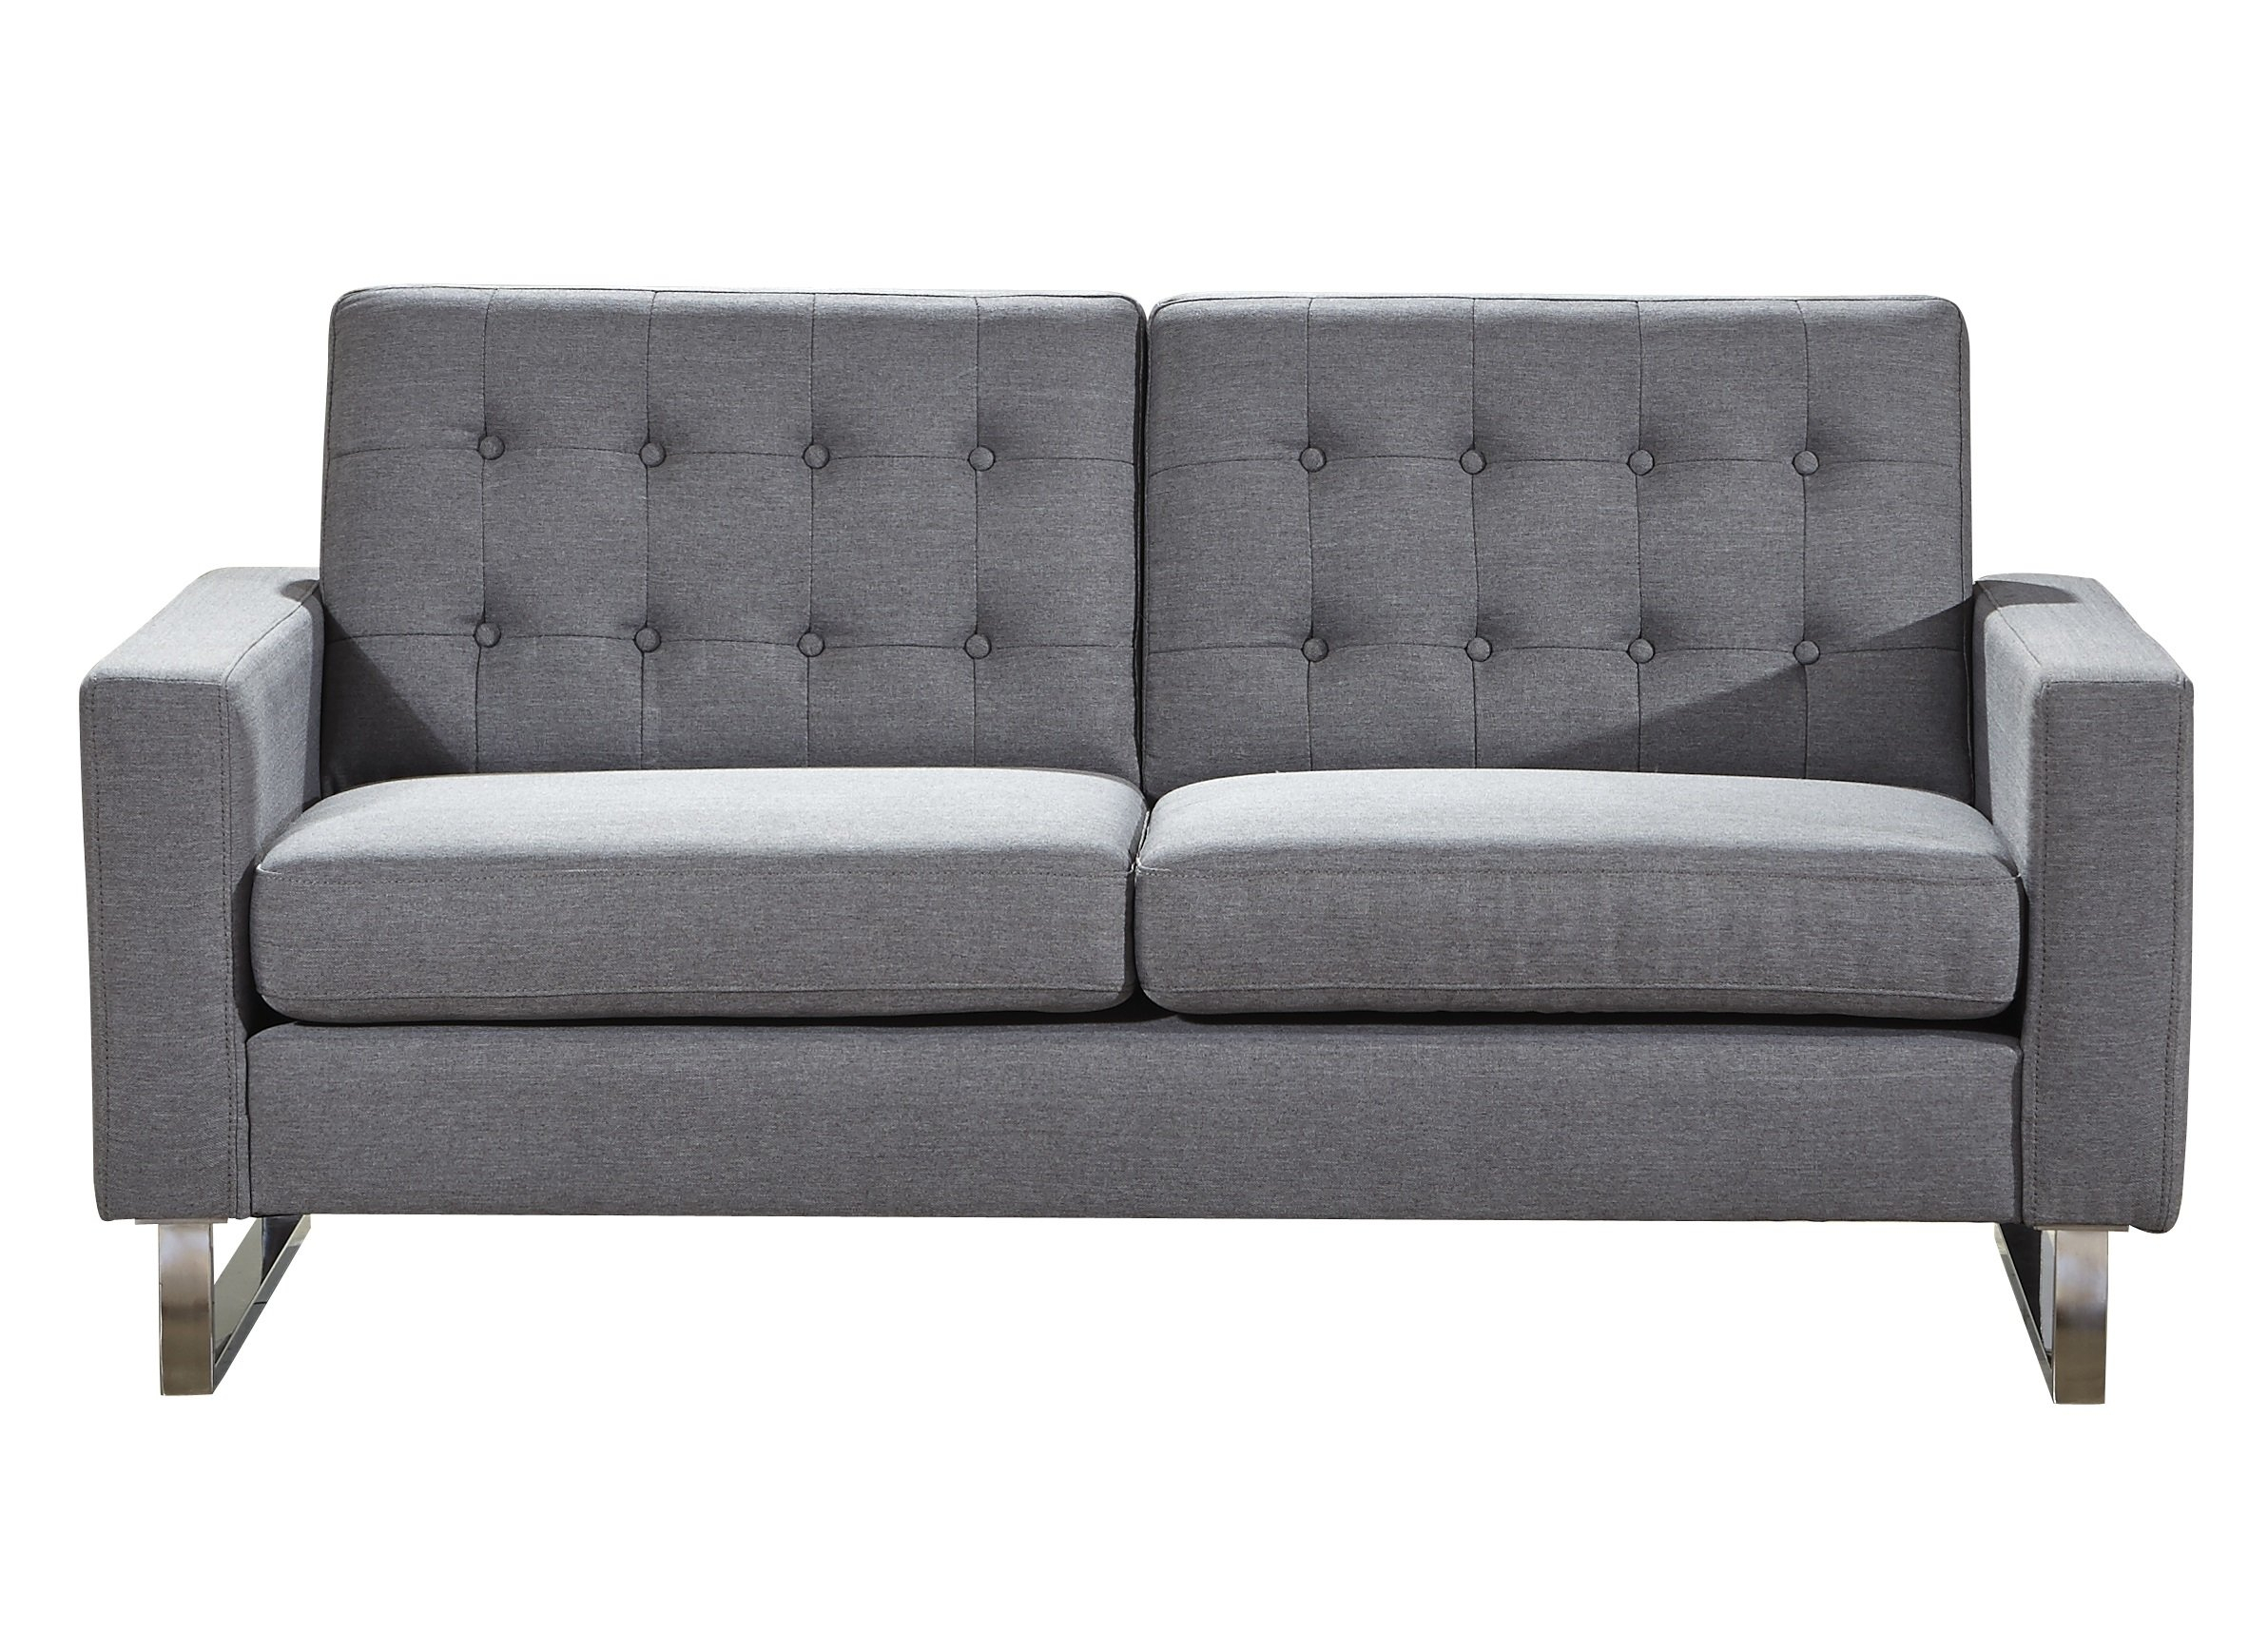 Wrought Studio Gwen Loveseat | Wayfair Throughout Gwen Sofa Chairs (View 5 of 25)